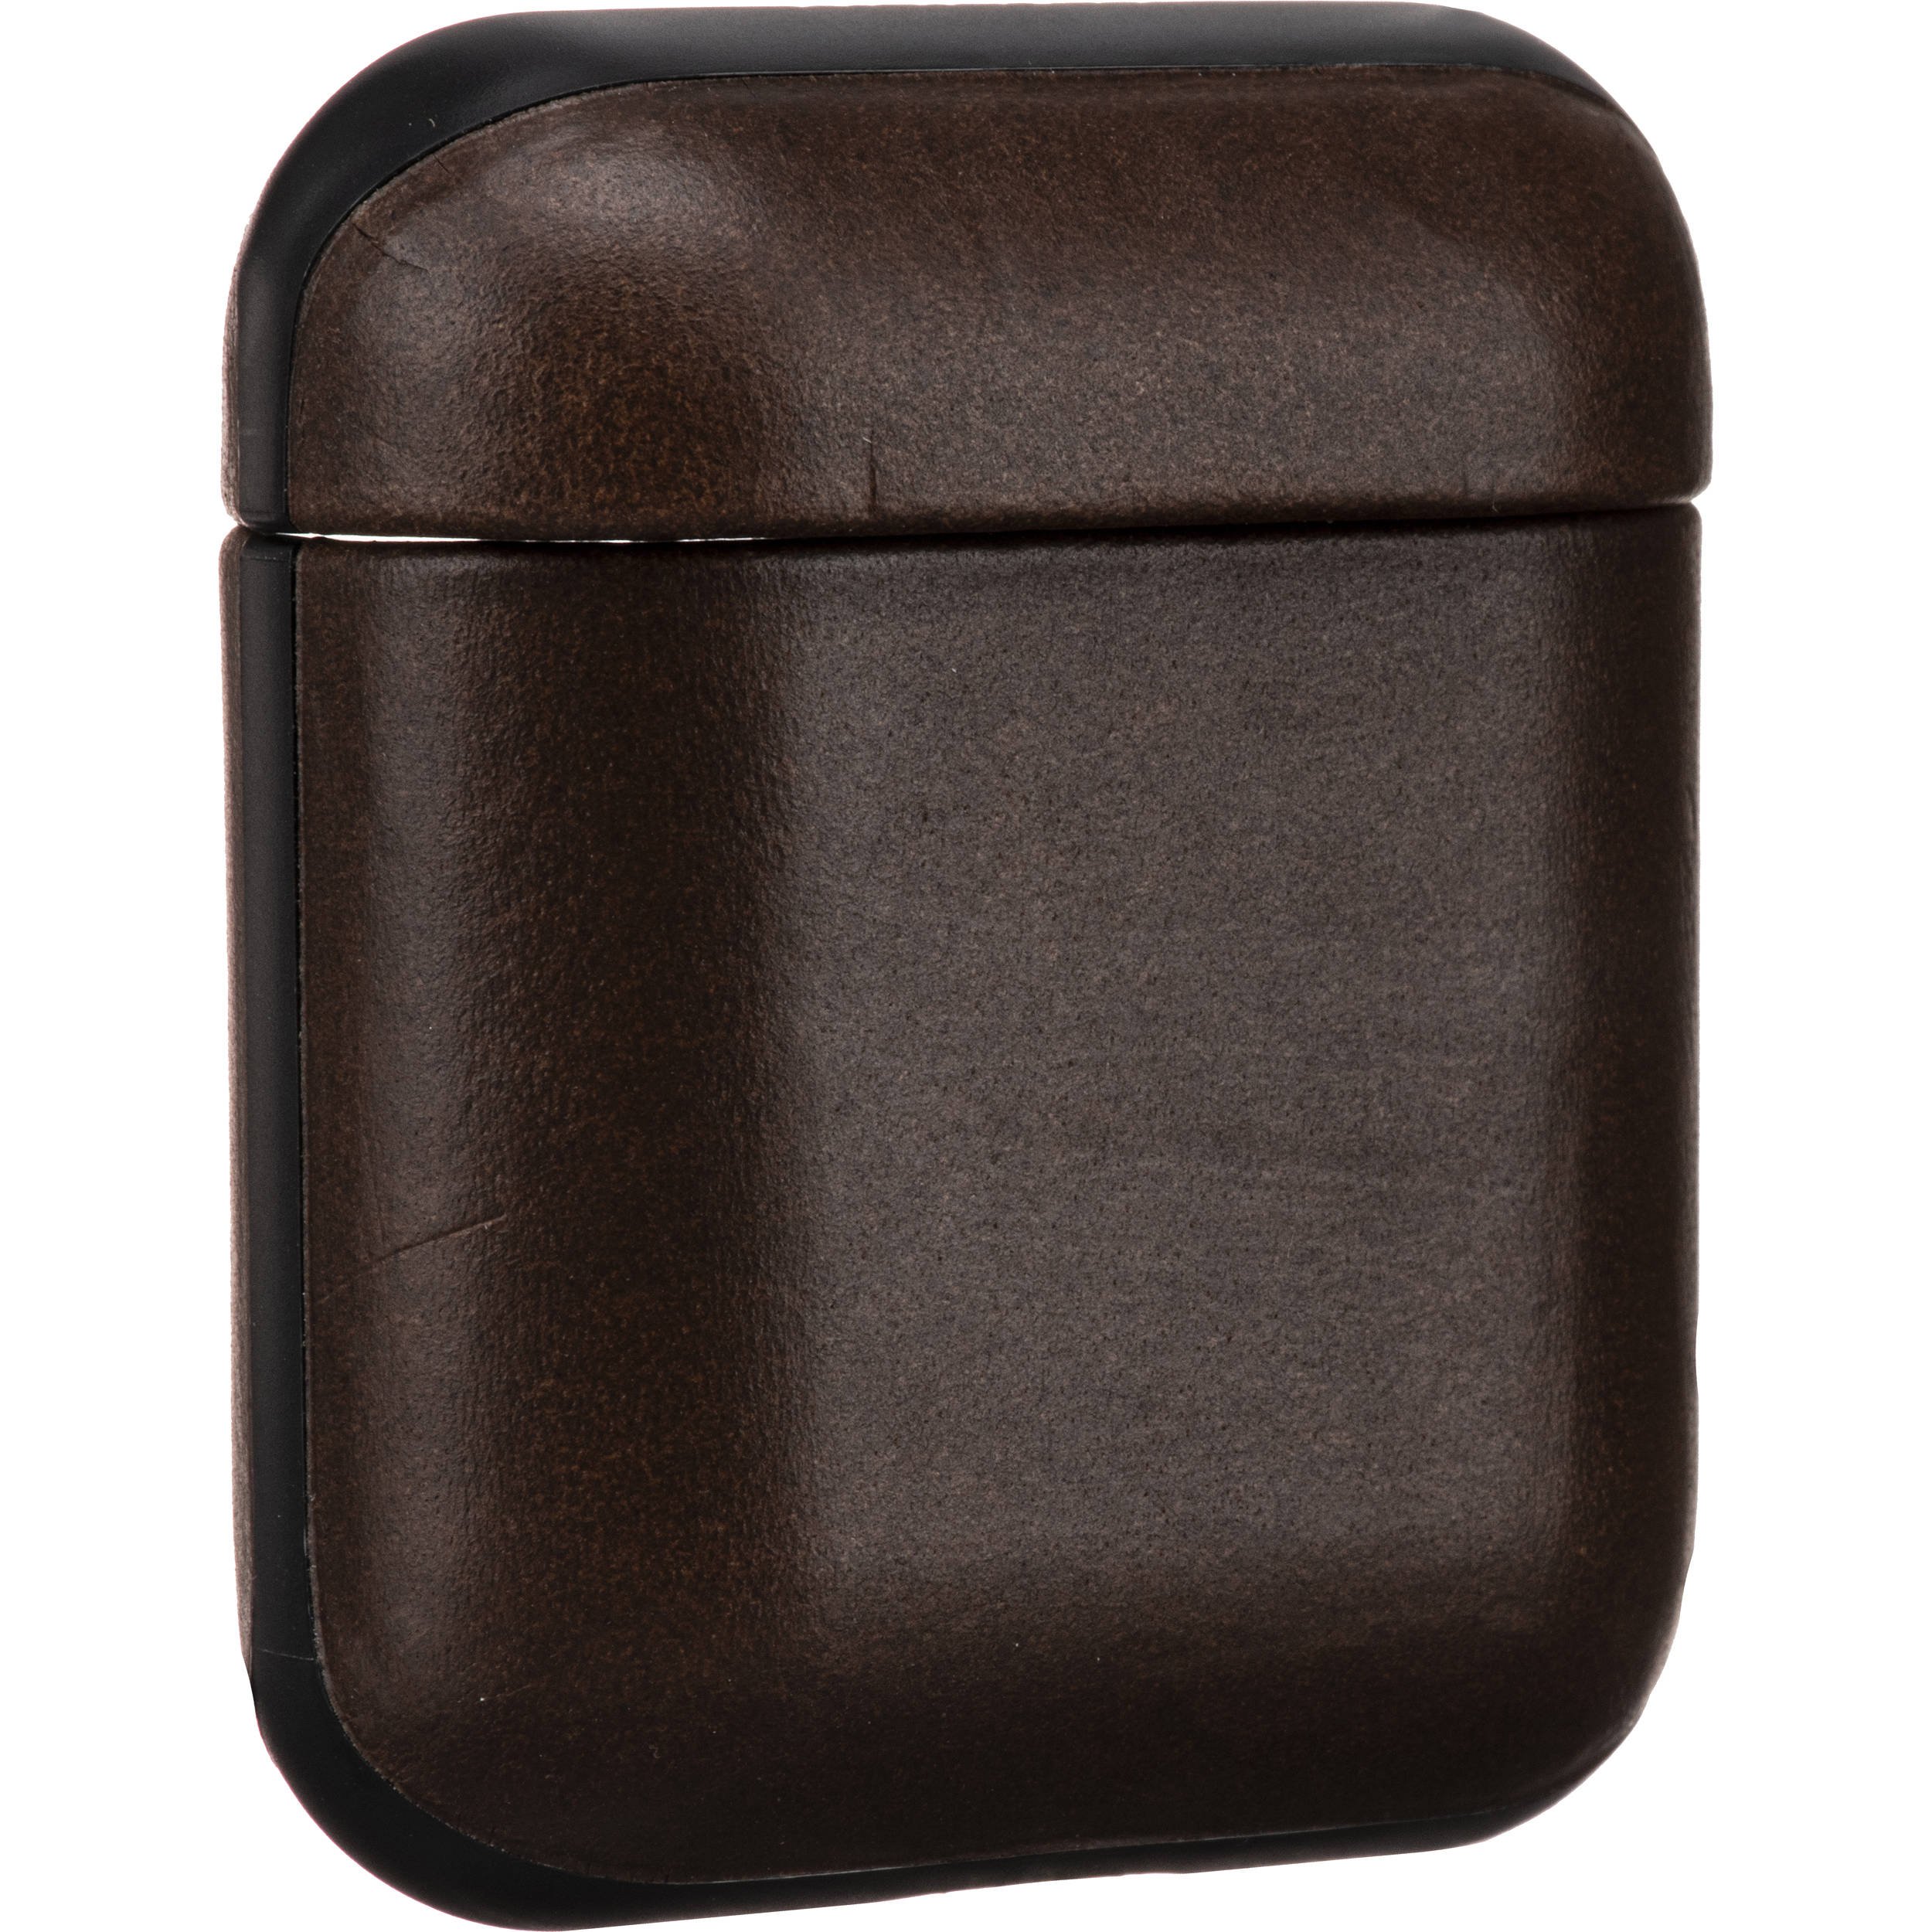 huge discount e3327 81336 Nomad Rugged Case for AirPods (Rustic Brown)